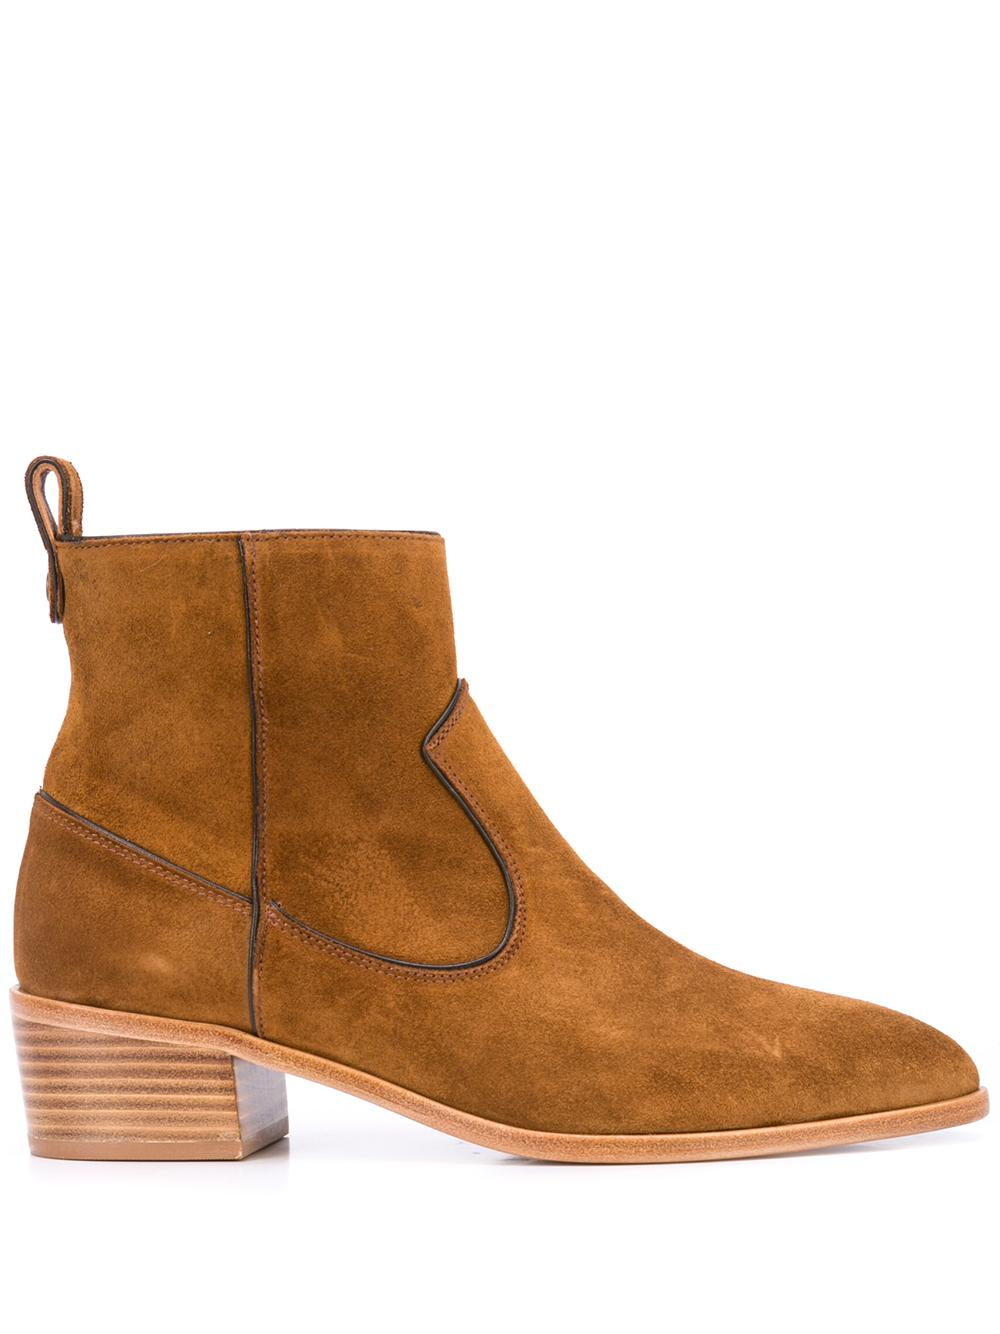 Suede Zip Bootie With Block Heel